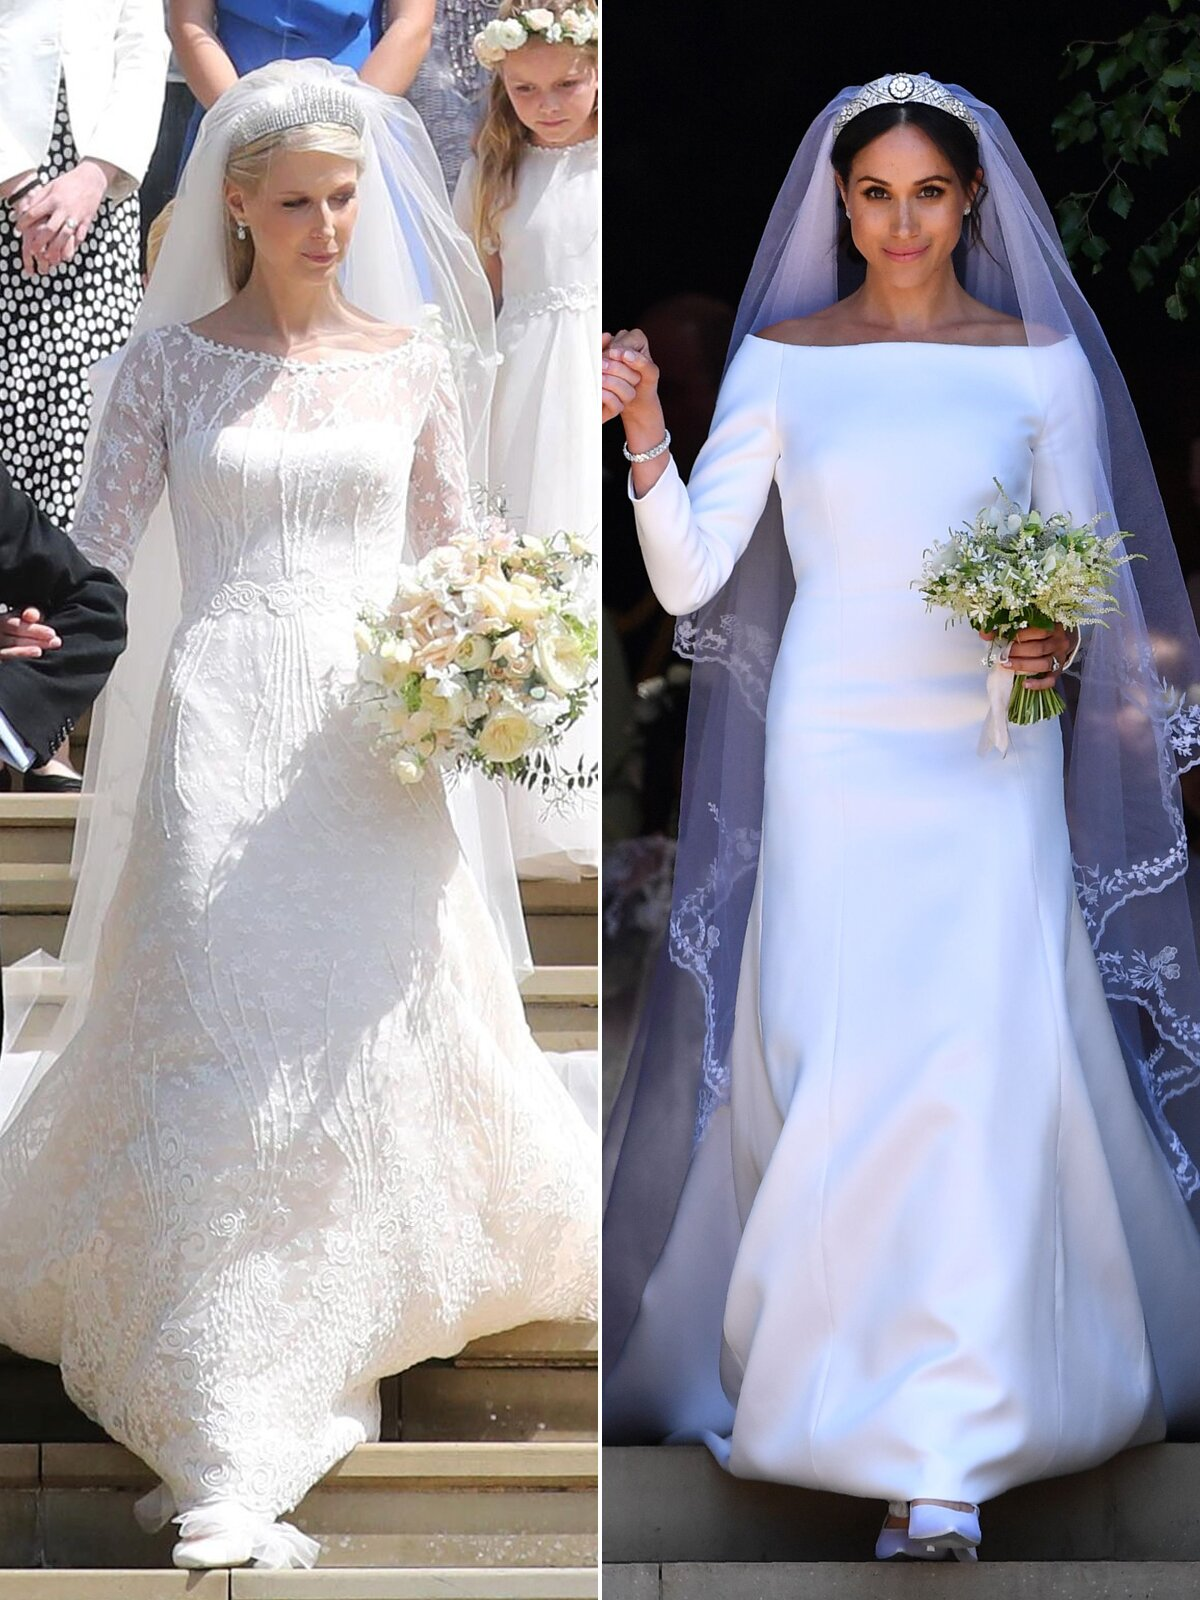 lady gabriella s wedding dress side by side with meghan markle people com lady gabriella s wedding dress side by